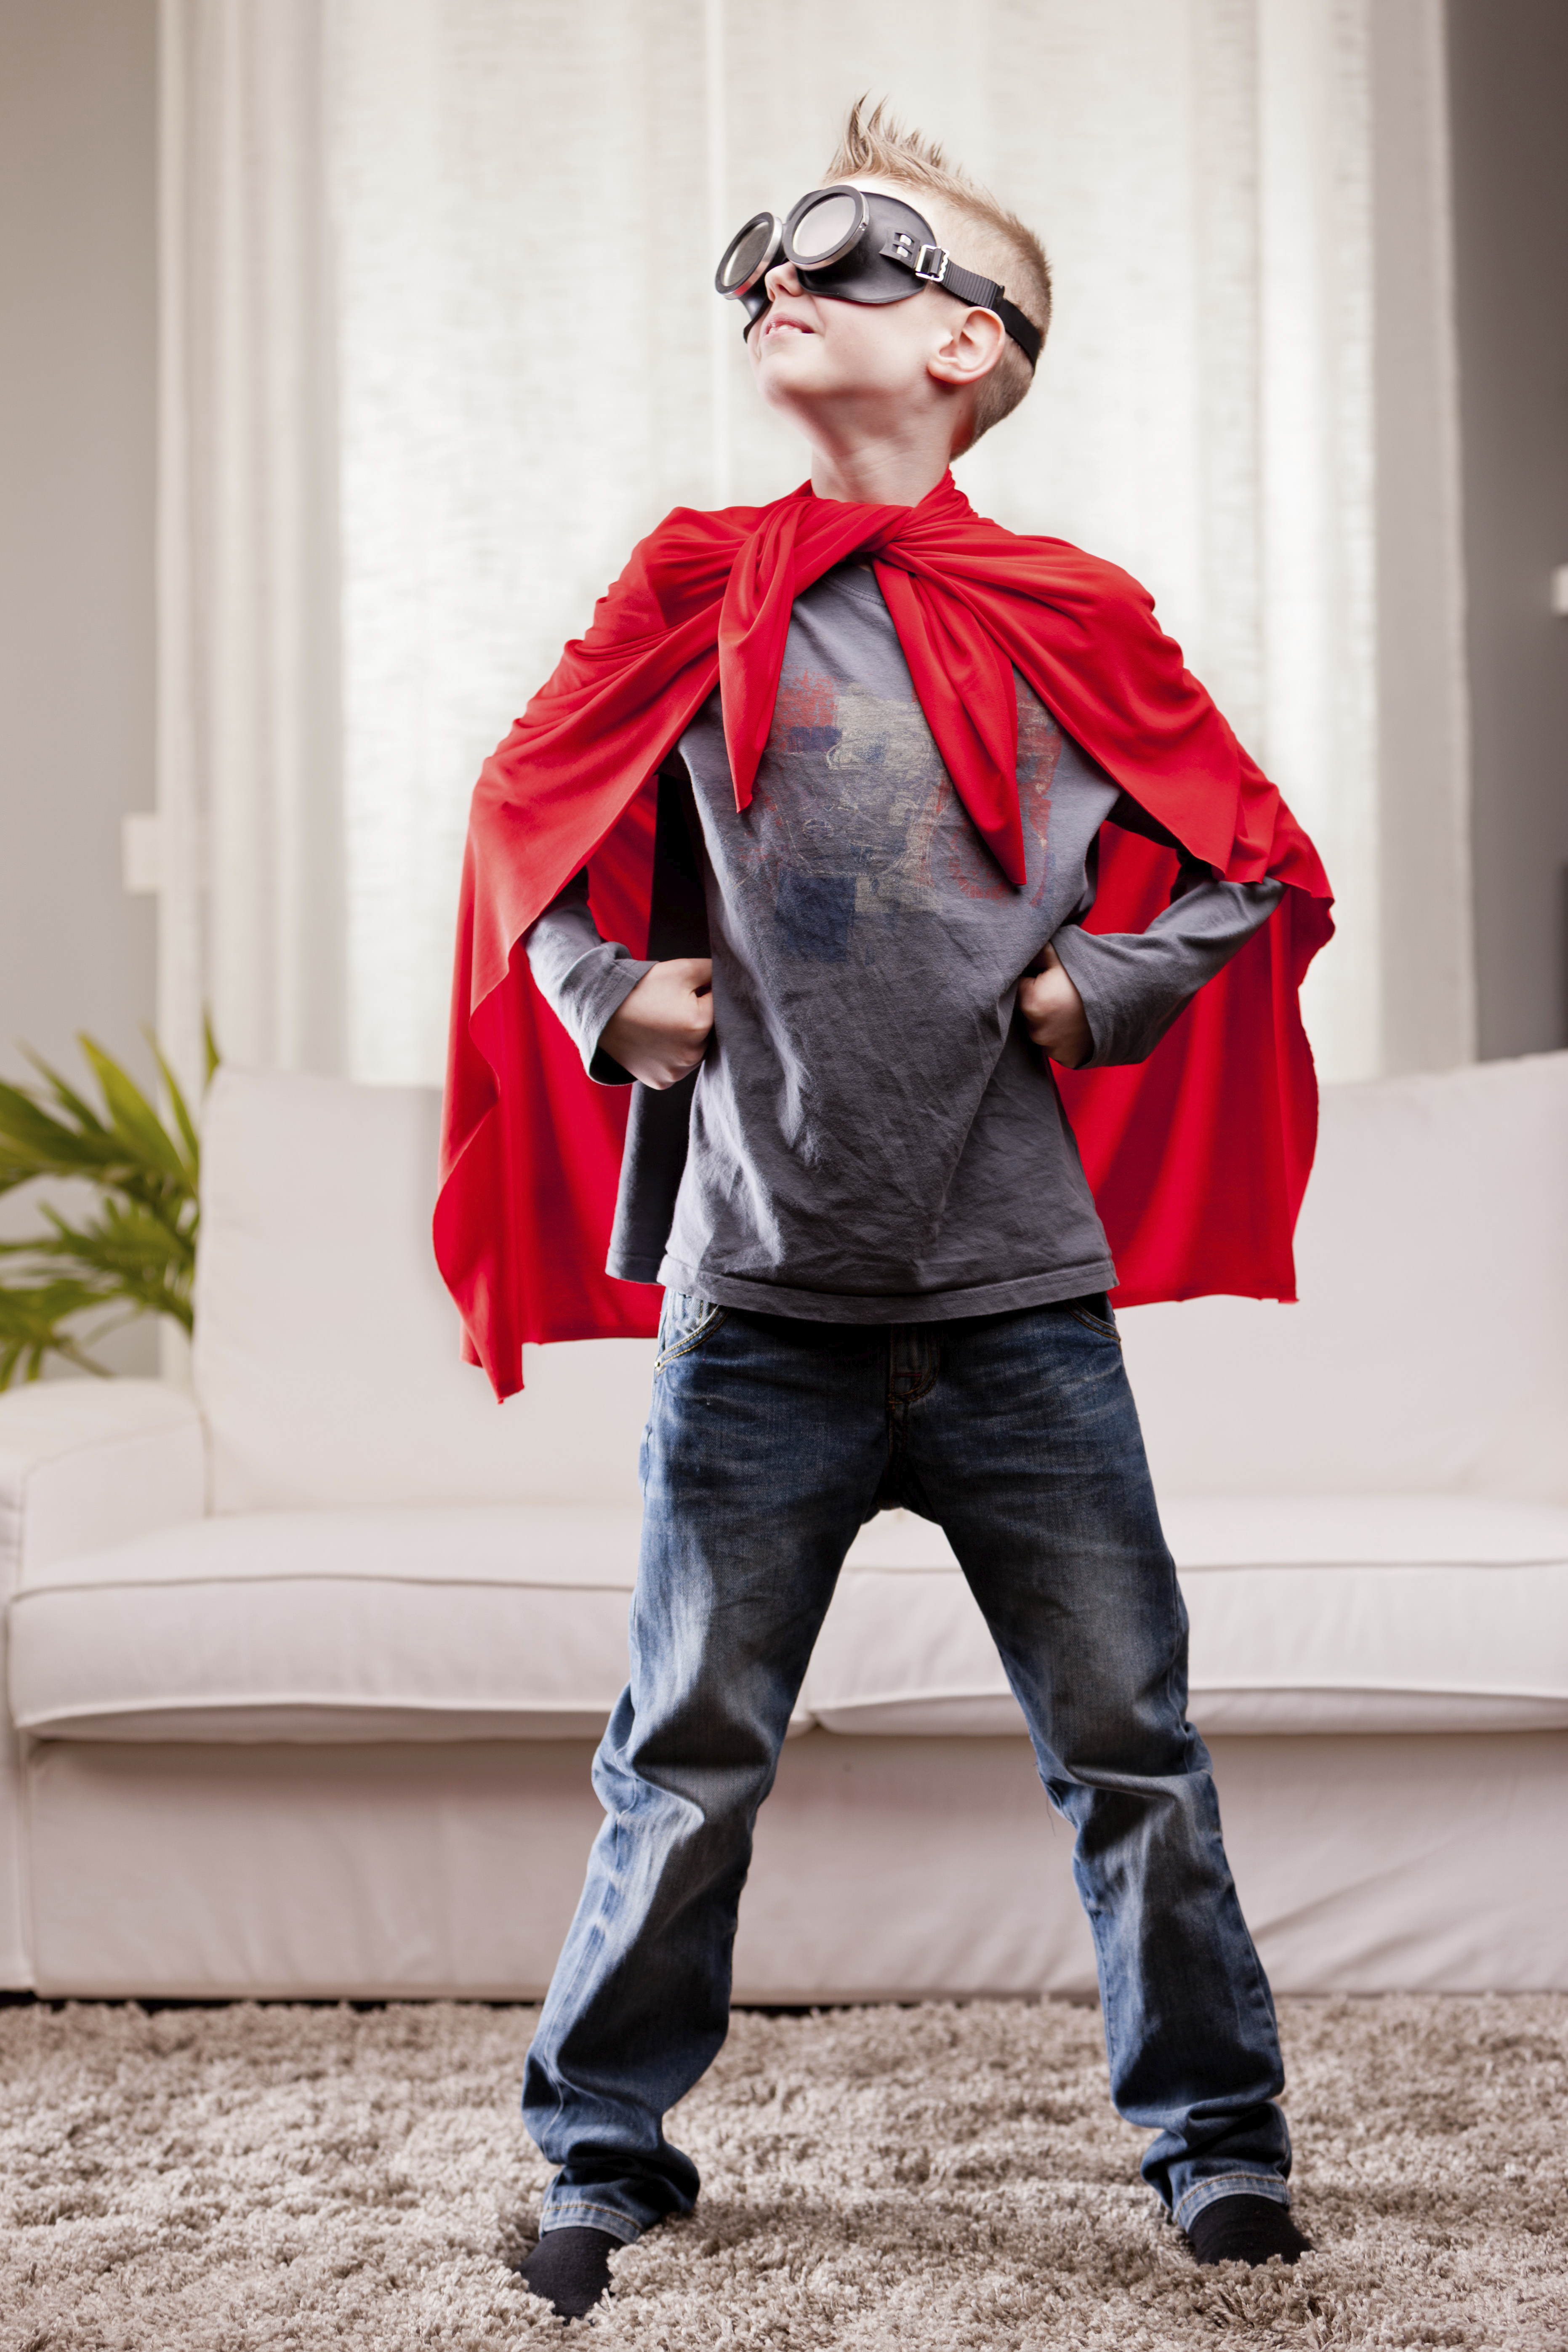 a little kid playing as a red cloak serious superhero